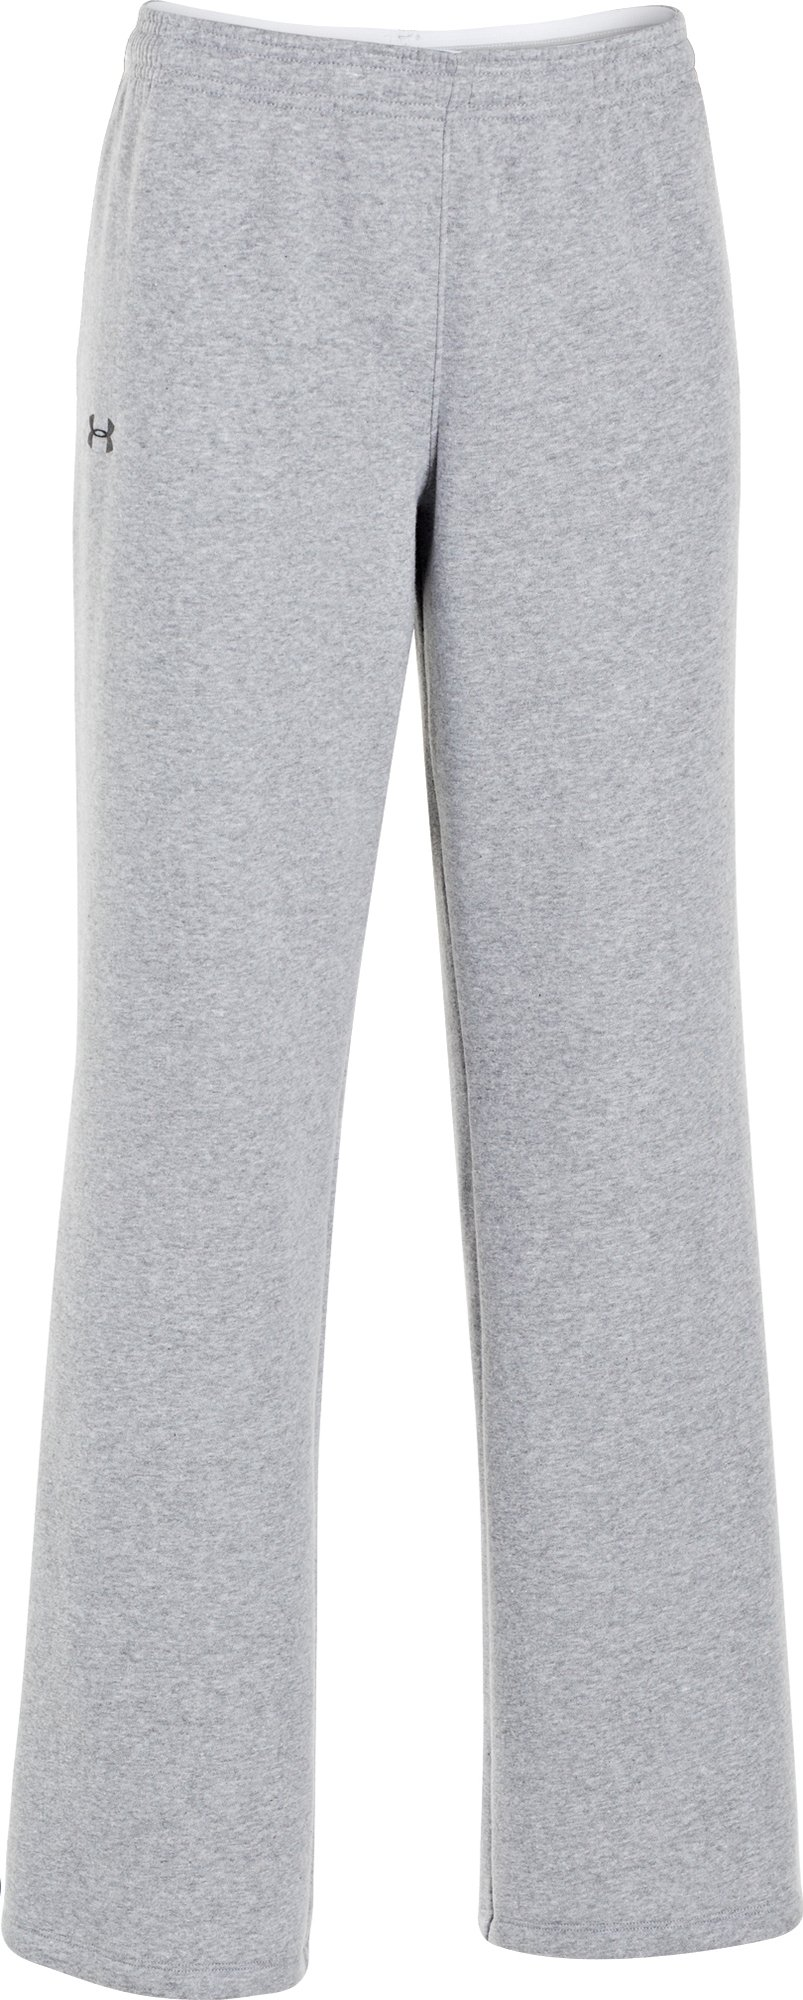 Under Armour Women's UA Team Rival Fleece Pants, True Gray Heather/Black, Large by Under Armour (Image #1)